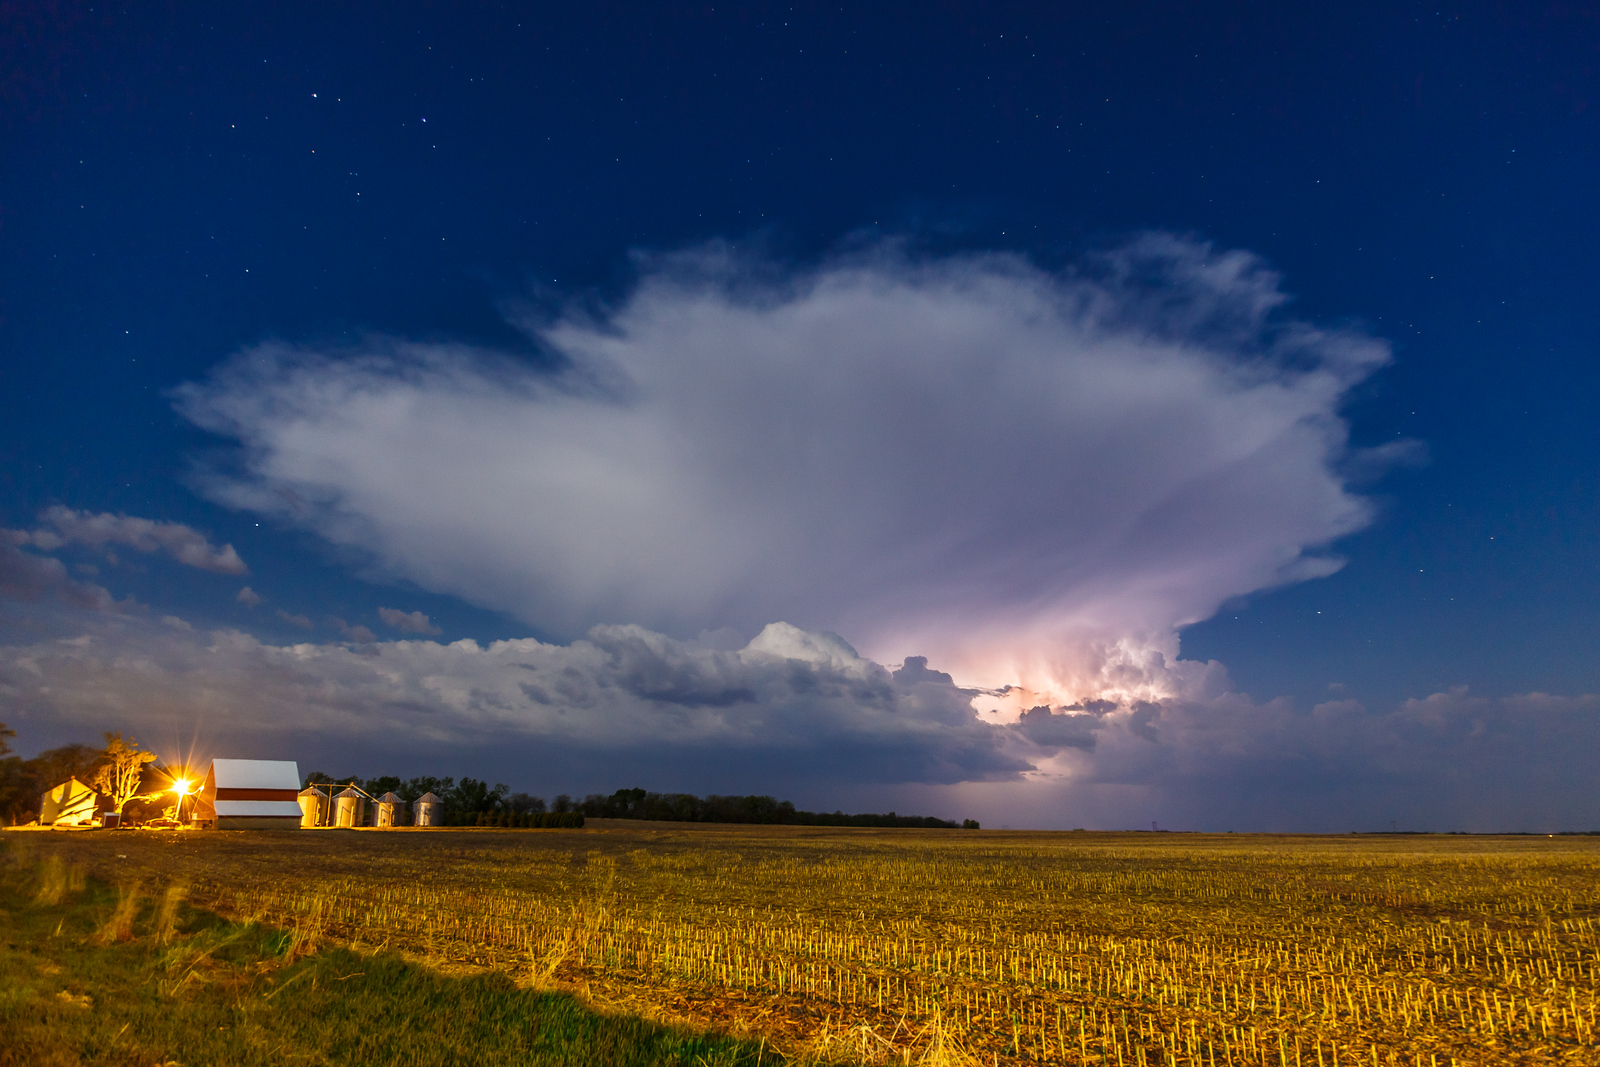 An approaching thunderhead glows in the light of a full moon